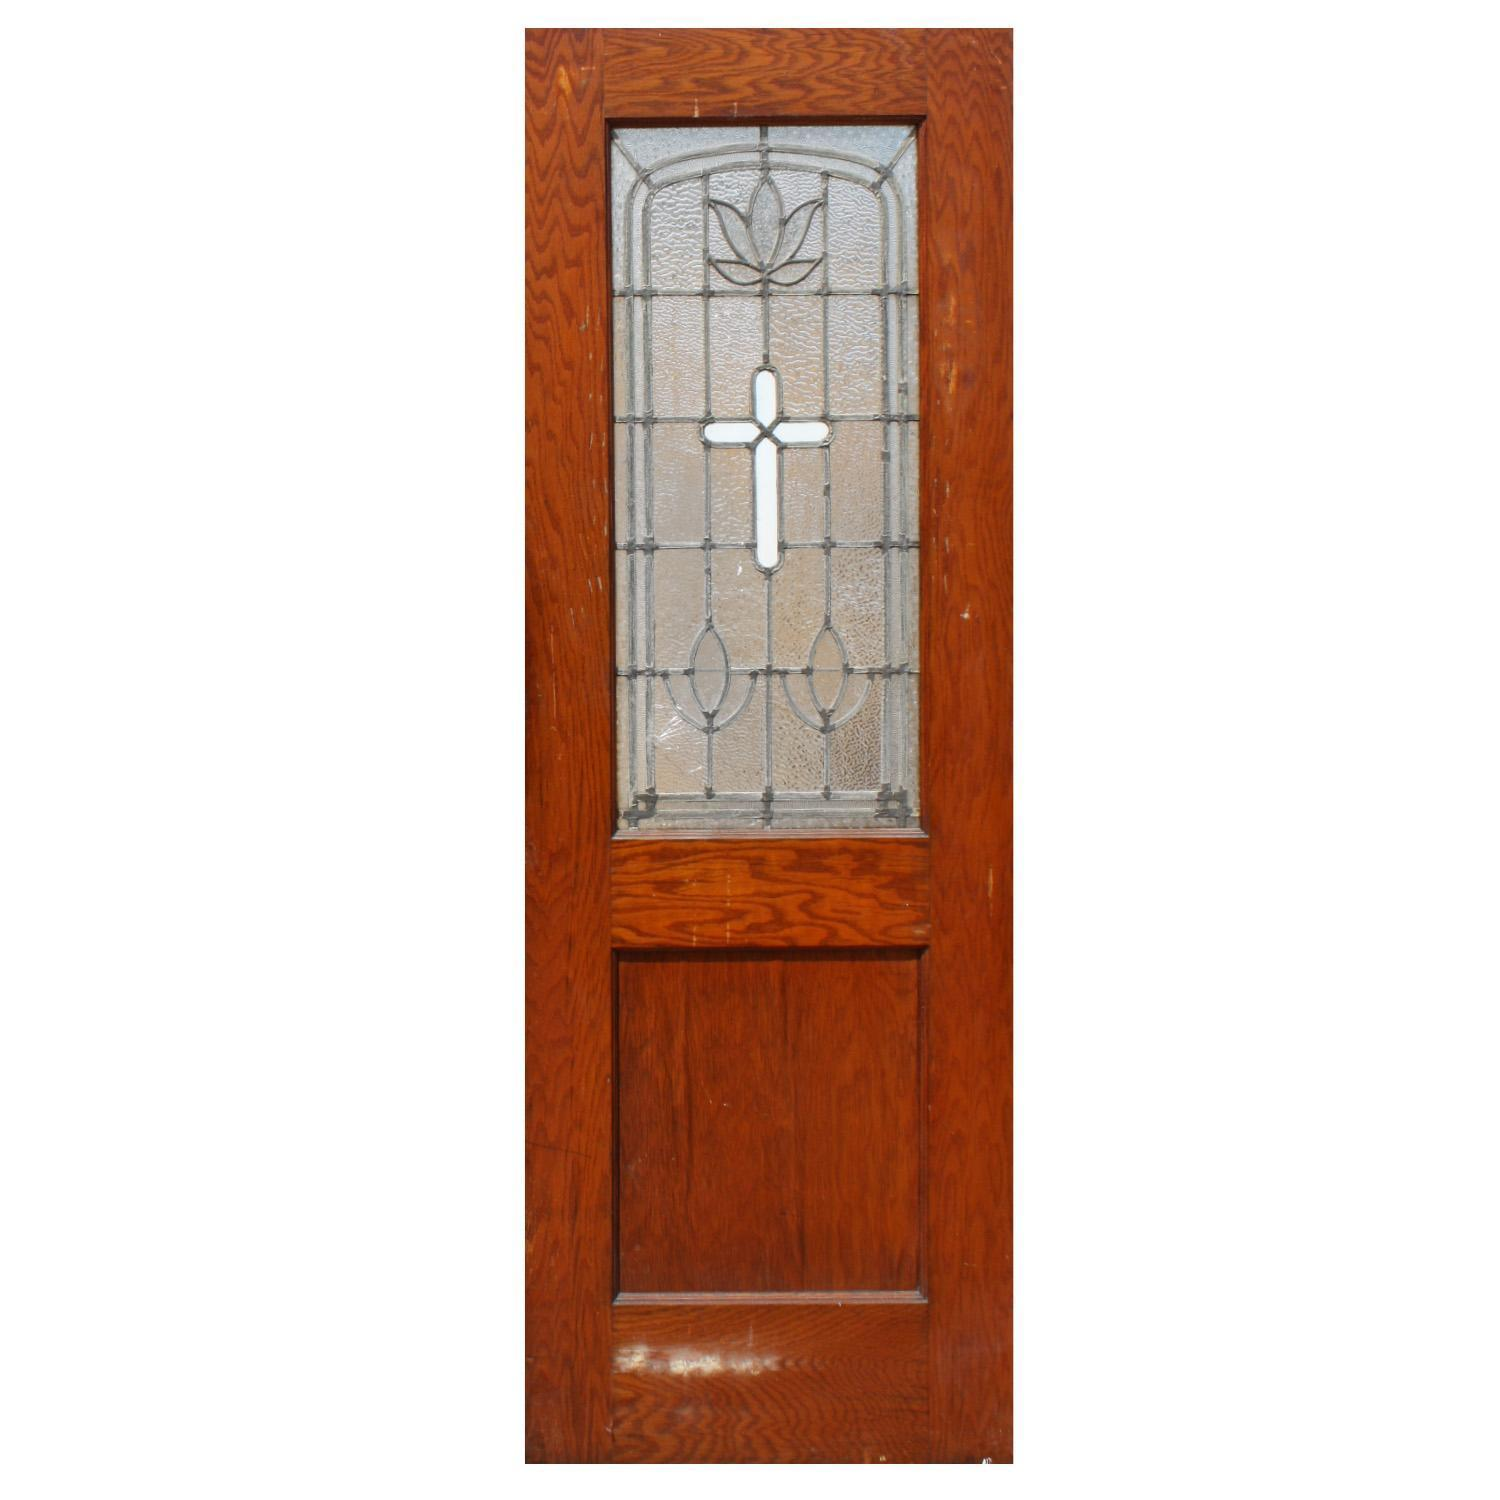 Reclaimed Antique Leaded Glass Door with Cross, Oak